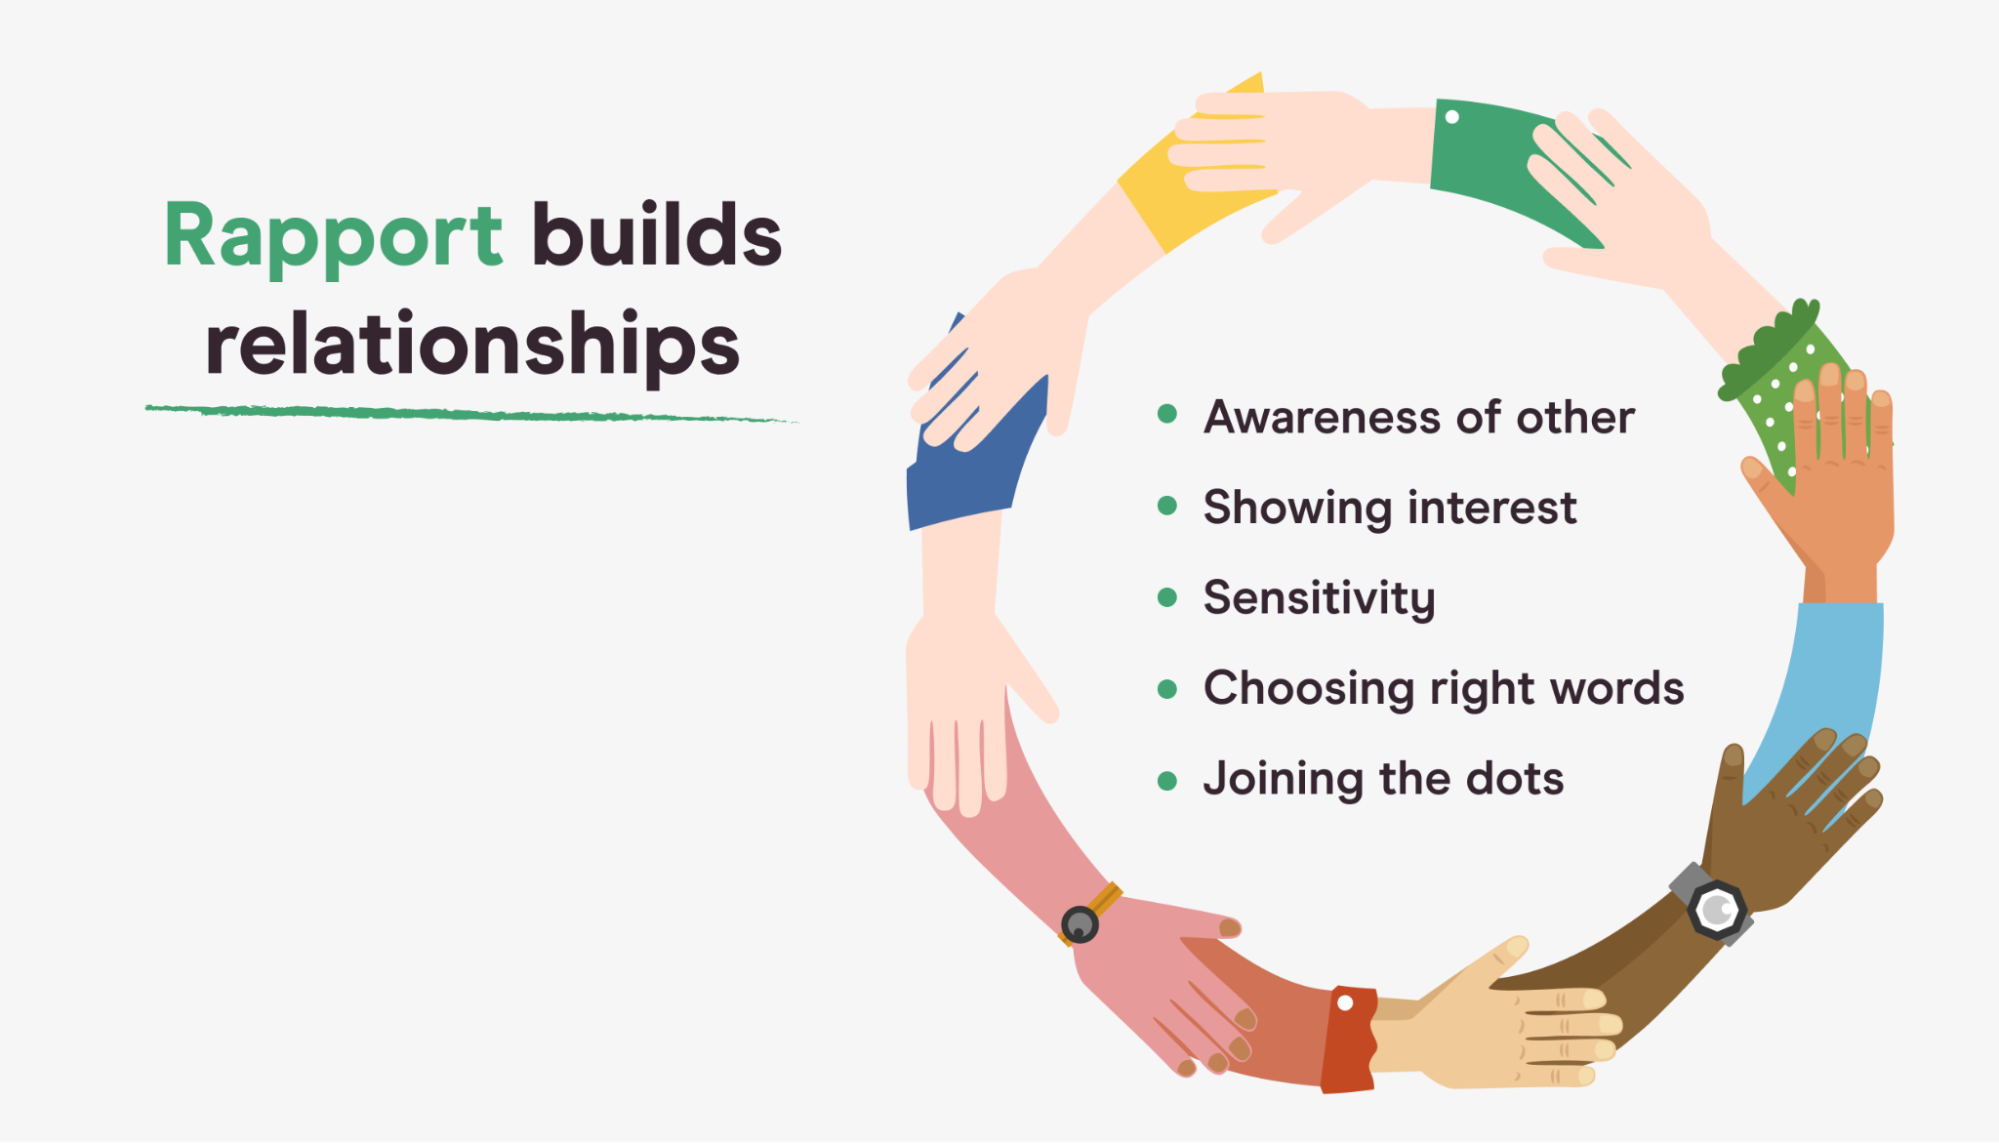 Visual representation of the principles of rapport building